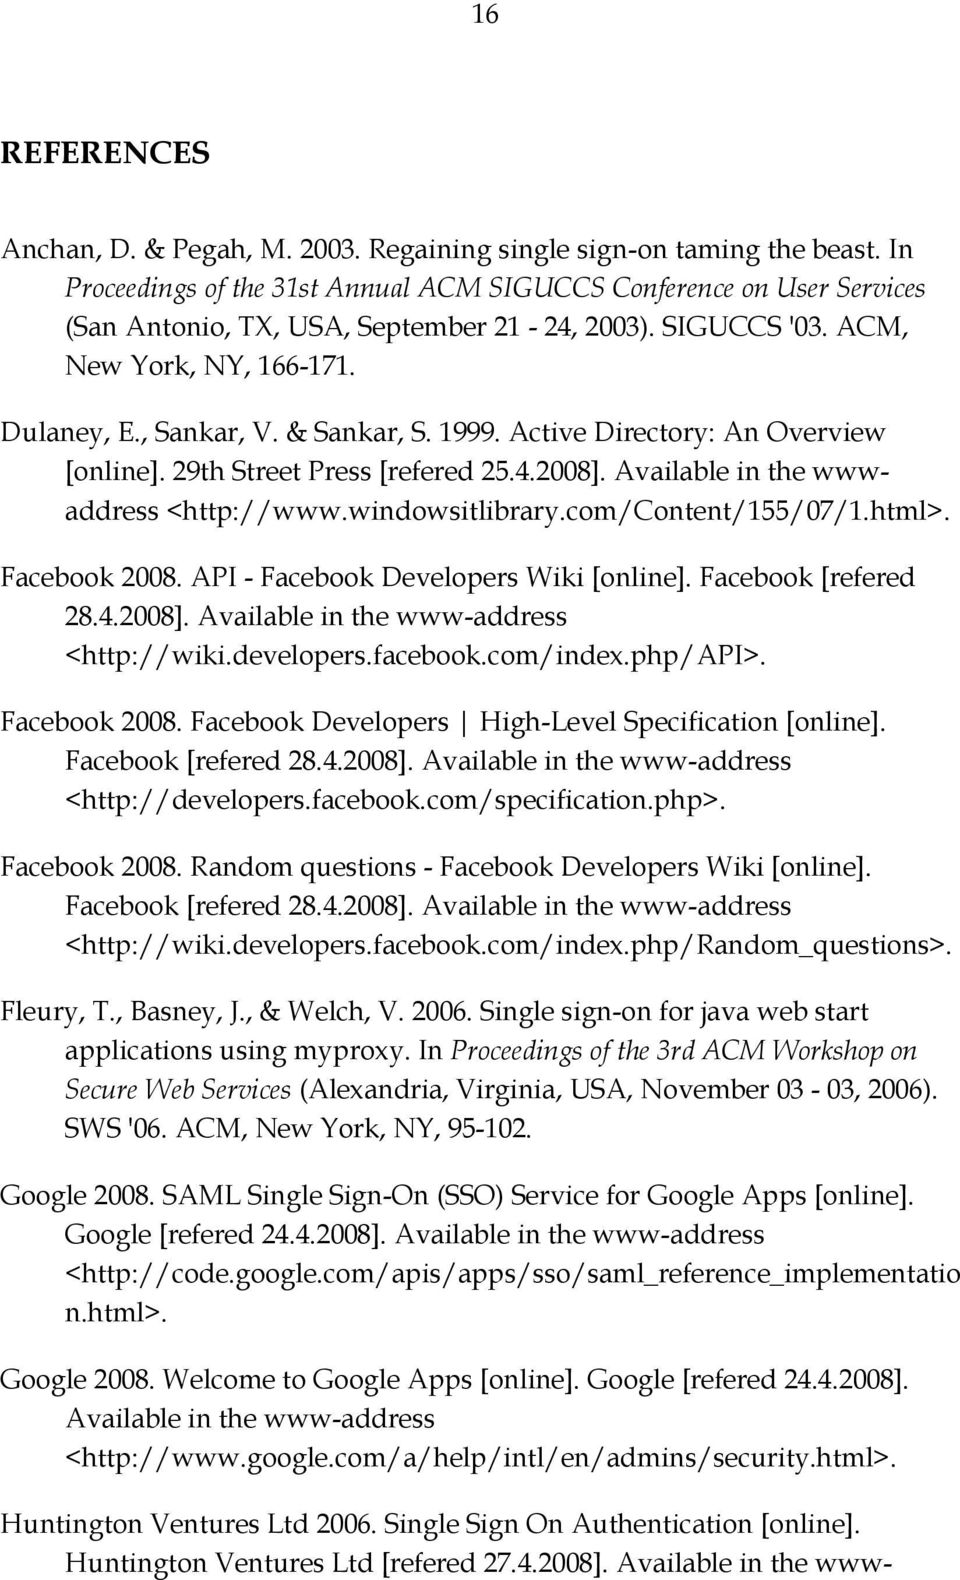 1999. Active Directory: An Overview [online]. 29th Street Press [refered 25.4.2008]. Available in the wwwaddress <http://www.windowsitlibrary.com/content/155/07/1.html>. Facebook 2008.